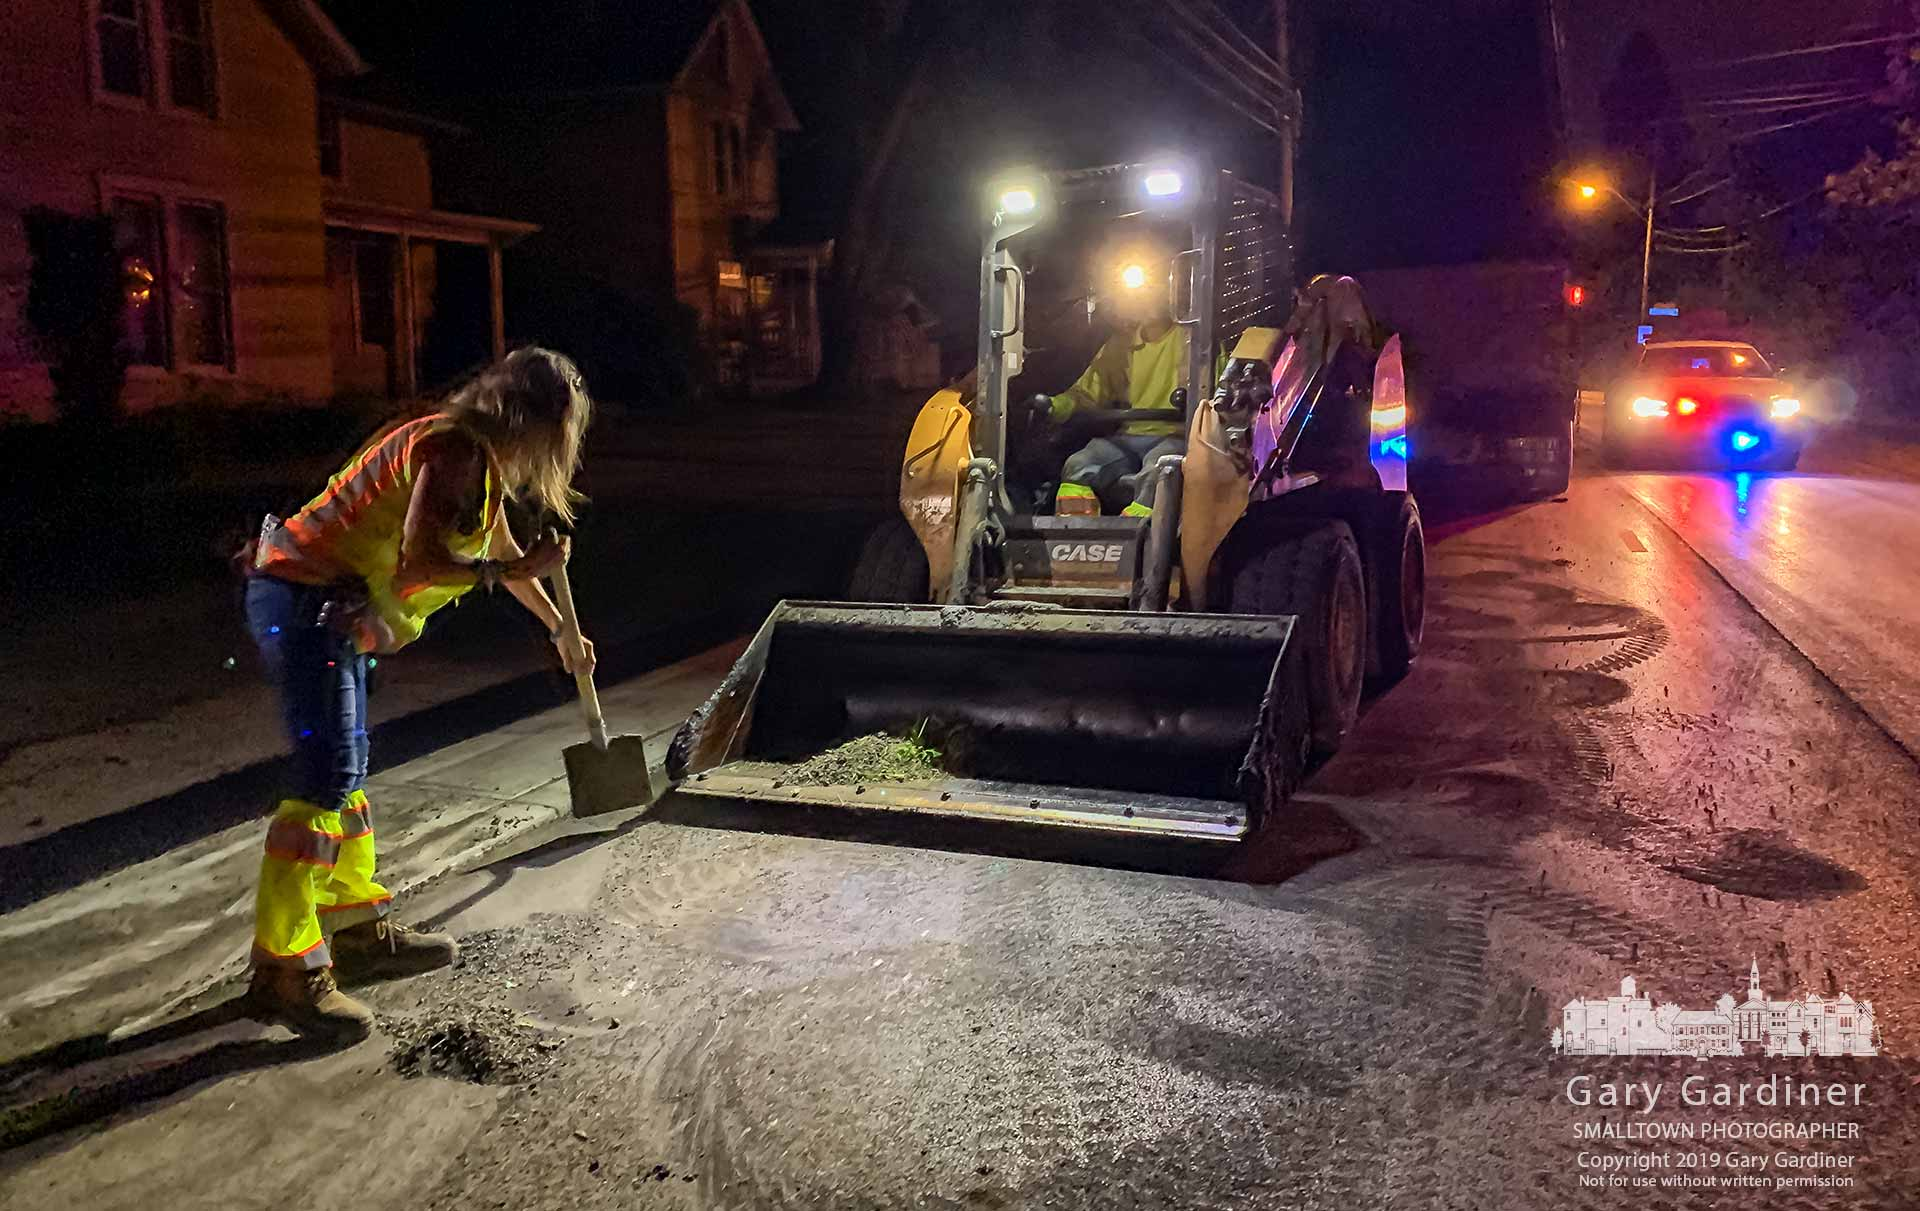 The overnight asphalt paving crew clears North State Street of the last pile of detritus left after completing the milling and repaving of the road from Hoff Rd. to Broadway. My Final Photo for June 8, 2019.